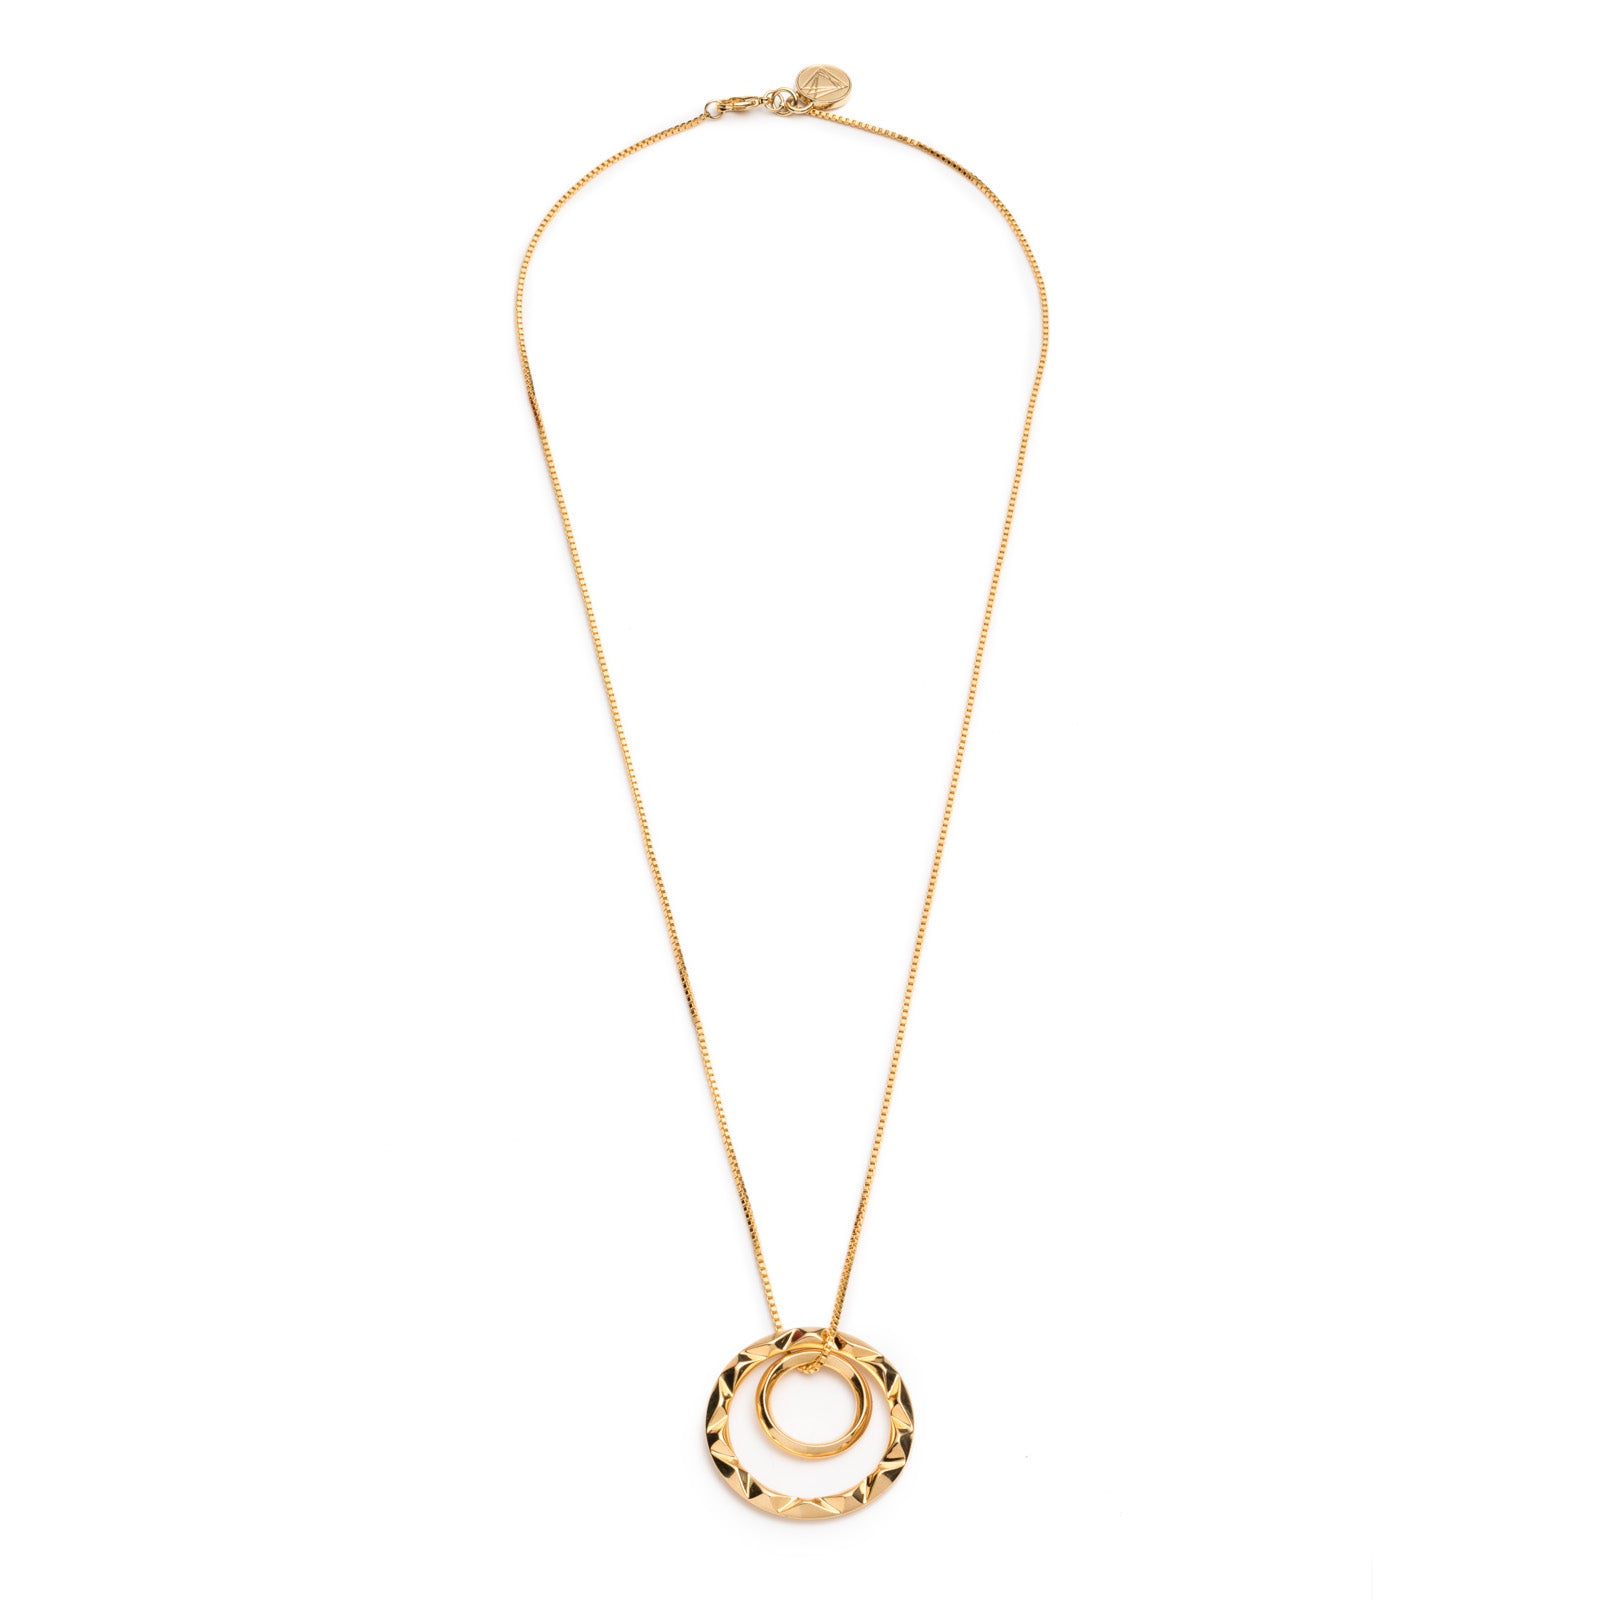 PRIZM DOUBLE PENDANT NECKLACE - Gold Plated Brass